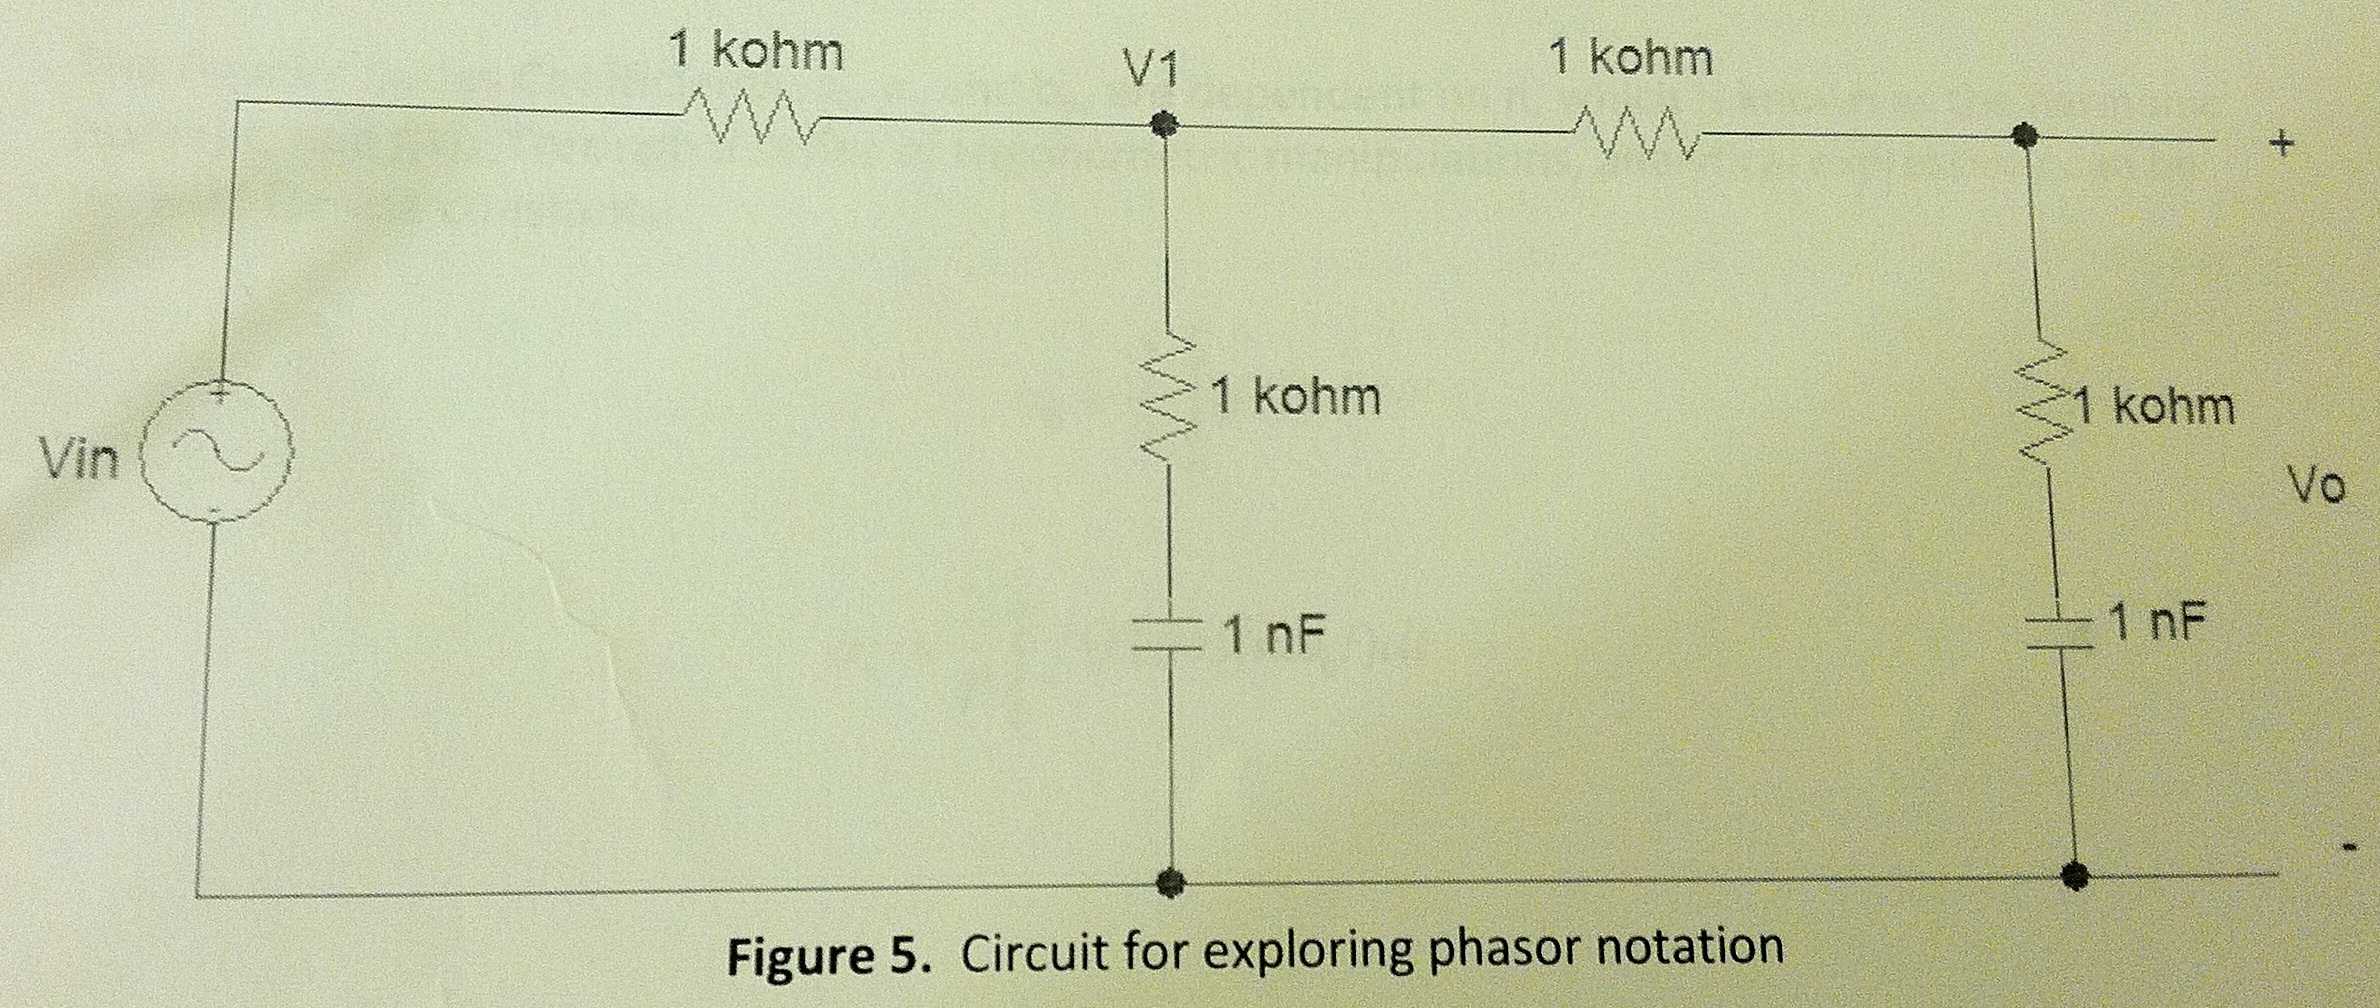 Circuit for exploring phasor notation